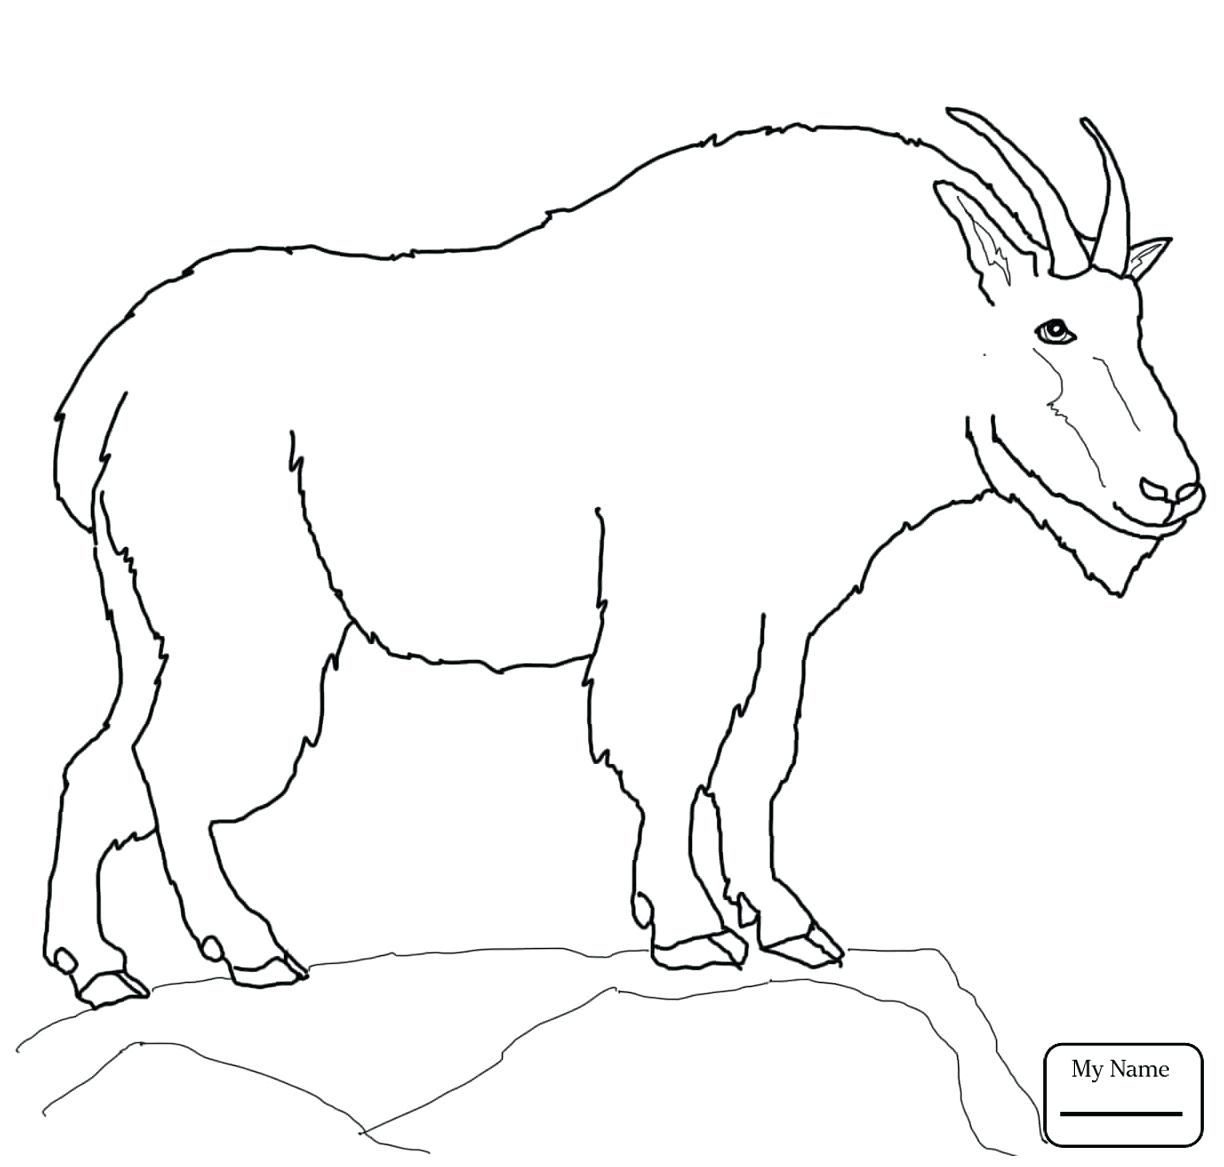 Mountain Goat Coloring Pages Download In 2020 Farm Animal Coloring Pages Coloring Pages Animal Coloring Pages